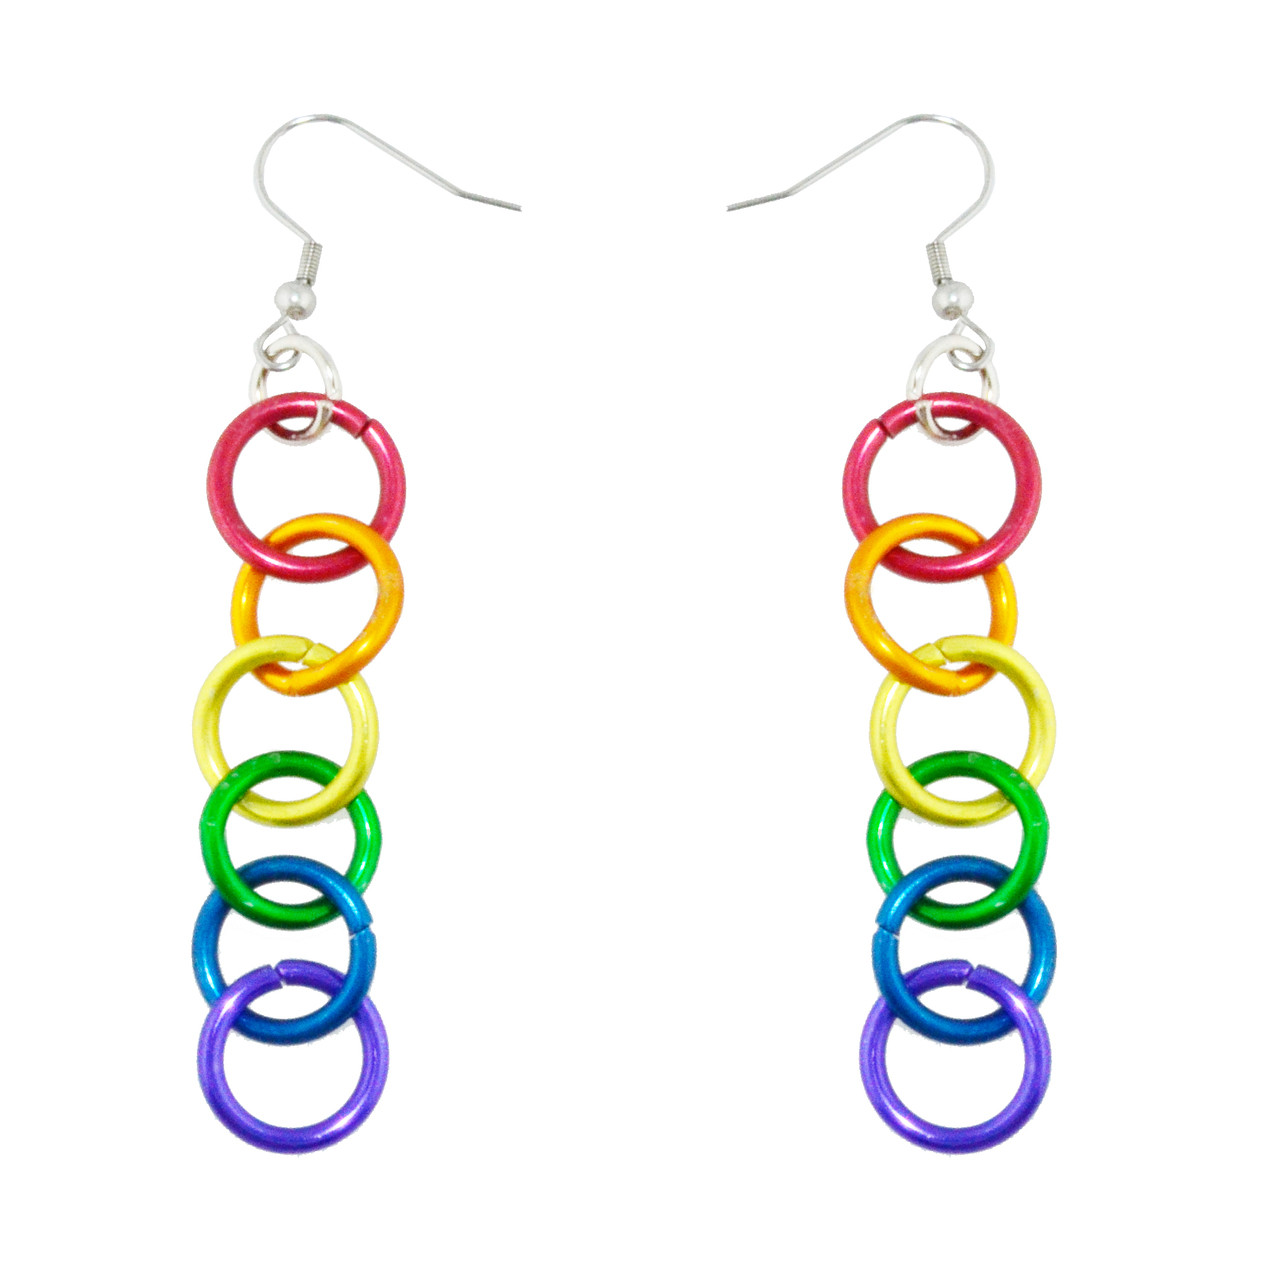 Bulk Rainbow Jewelry Lgbt Pride Rainbow Linkage Dangle Earrings Gay And